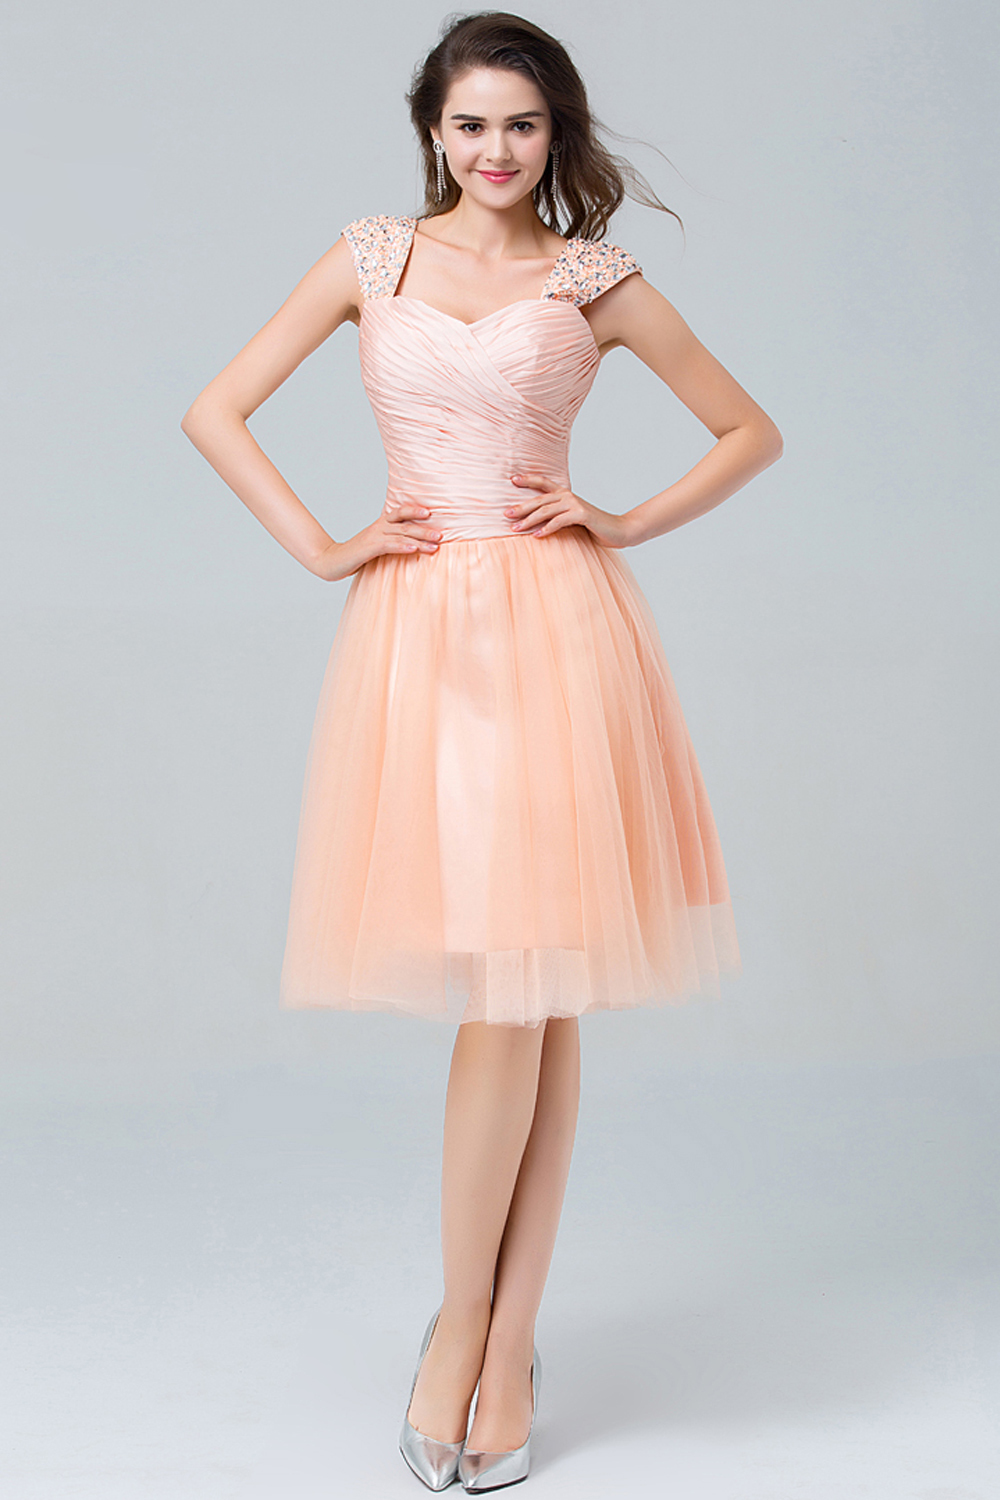 A-Line/Princess Sweetheart Neckline Knee Length Tulle Cocktail Dress with Pleats